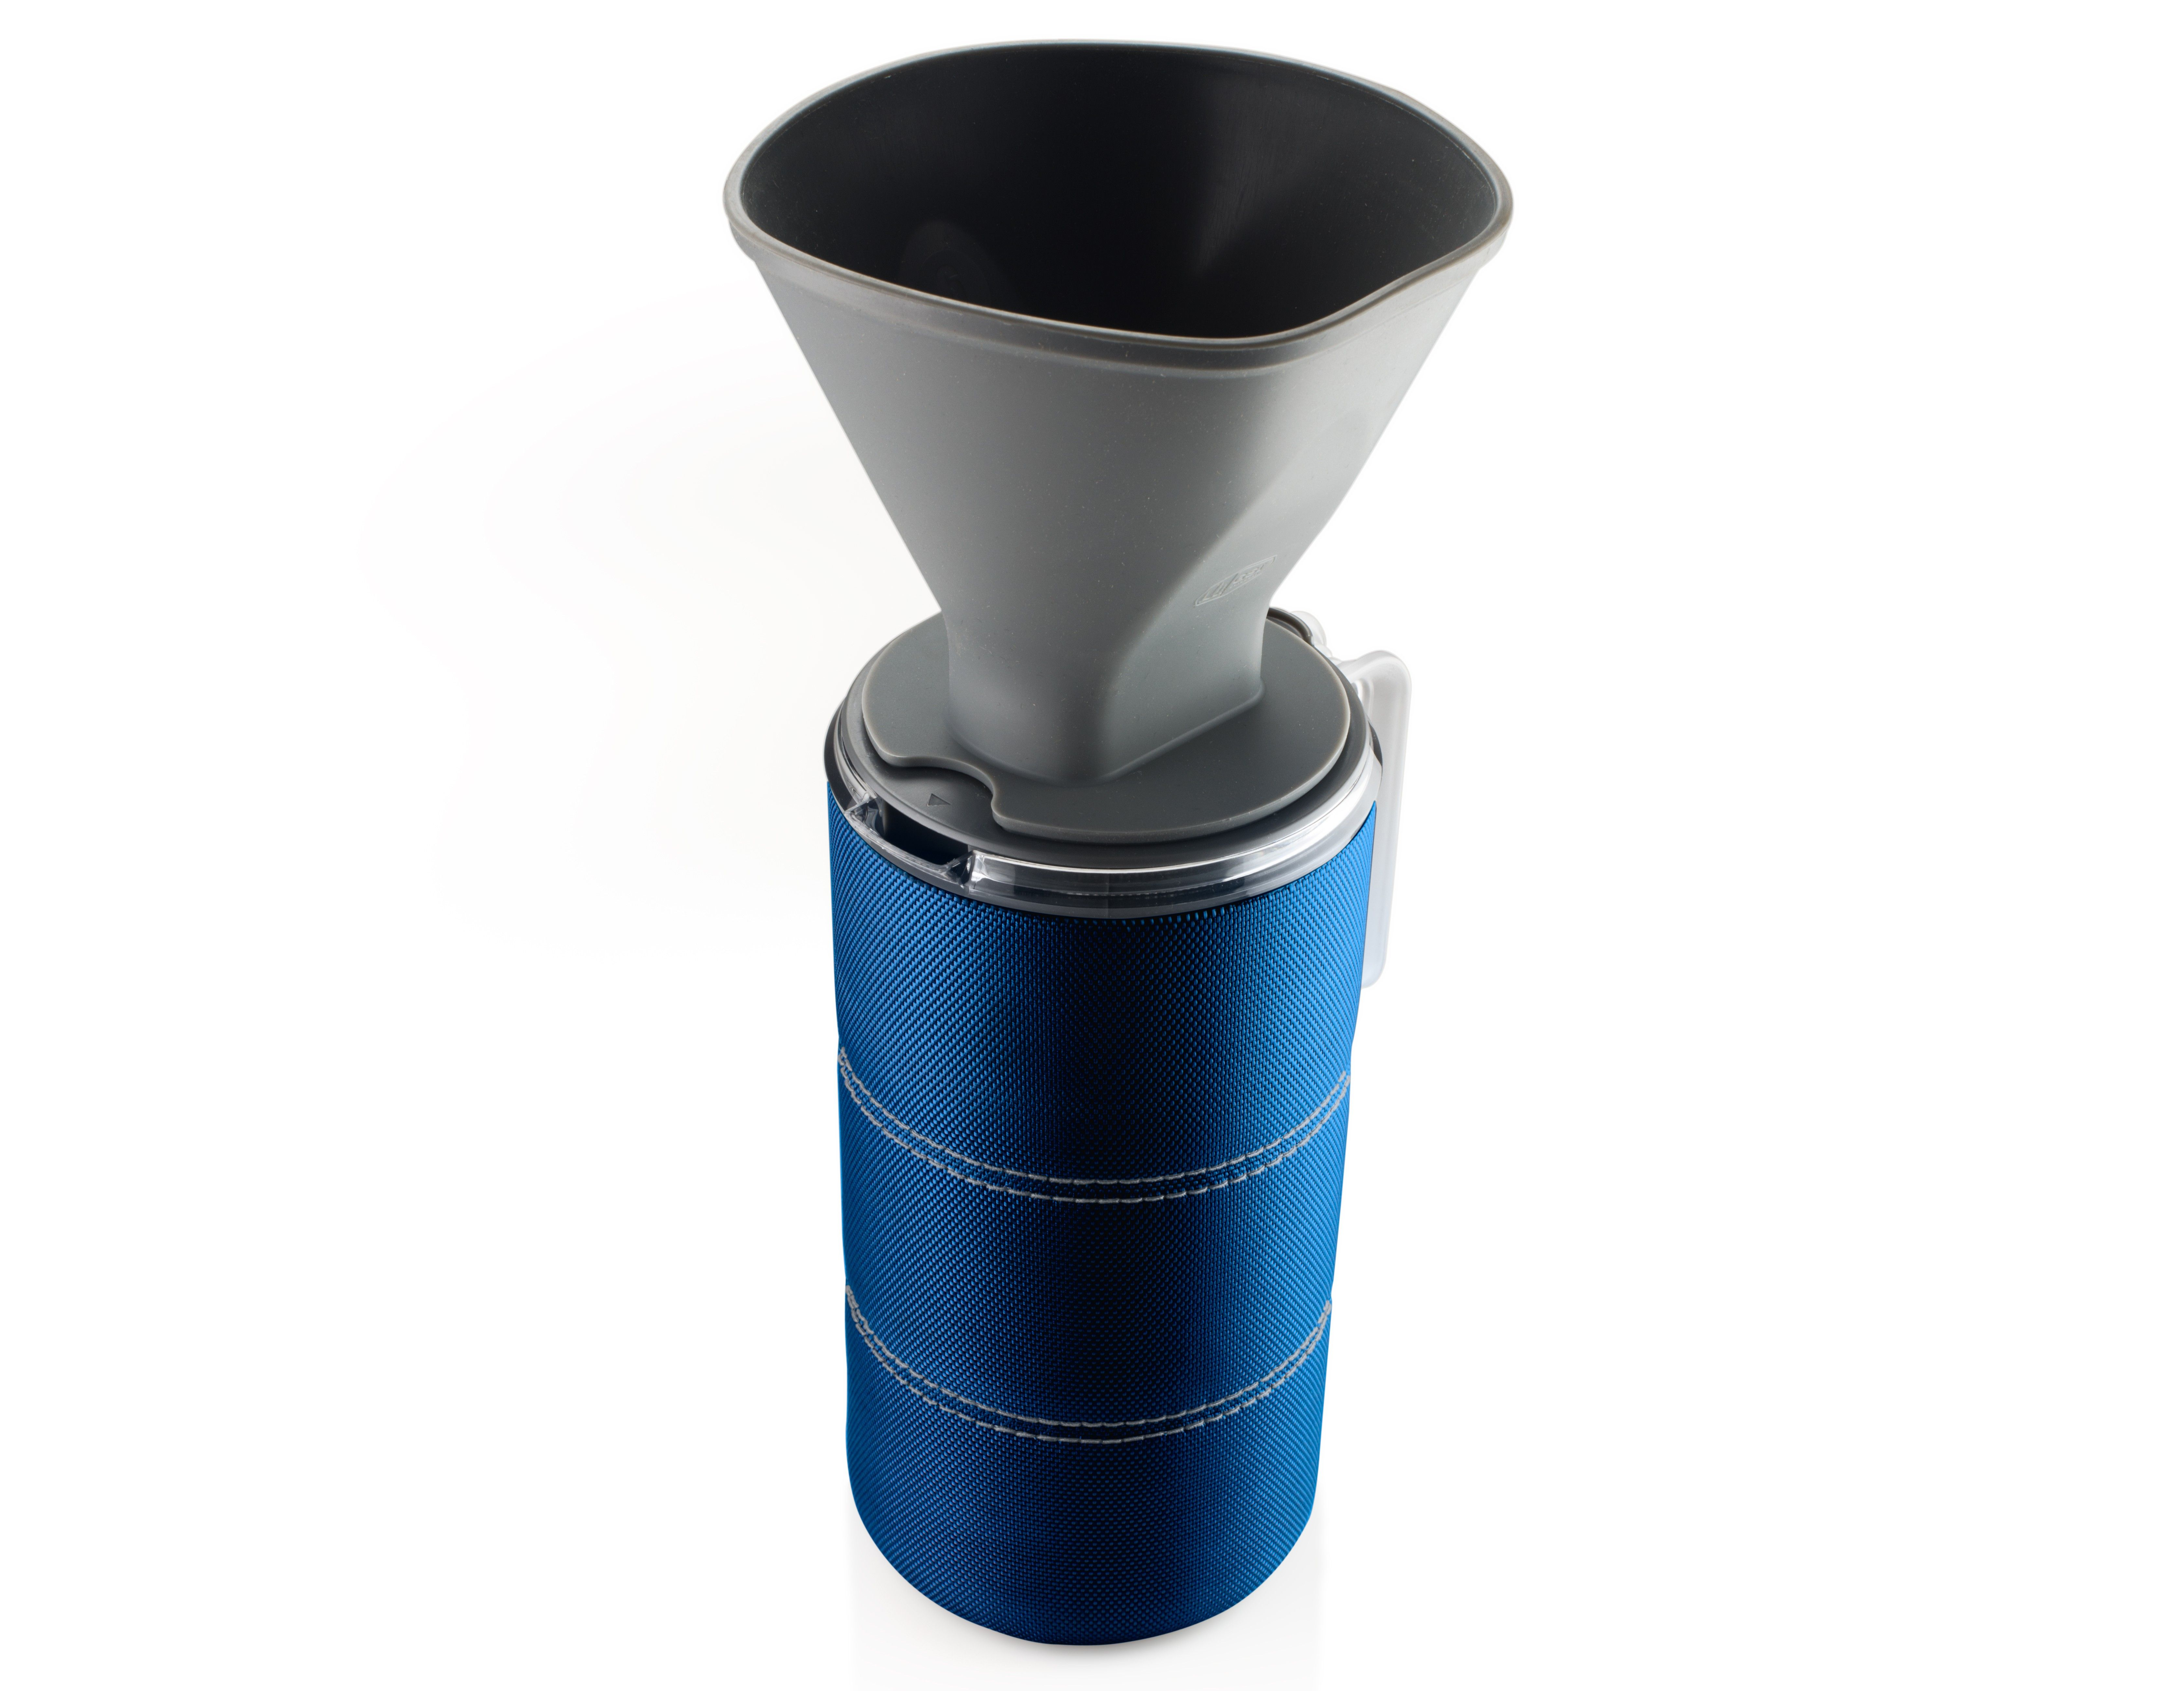 50 fl. oz. JavaDrip - Blue - The 50 fl. oz. JavaDrip brings the ease and familiarity of your home coffee maker wherever your adventures may take you. Be the hero of your camp when you whip up several instant cups of morning bliss with this portable coffee maker. Lightweight, BPA-Free, and shatter-resistant, it goes anywhere.